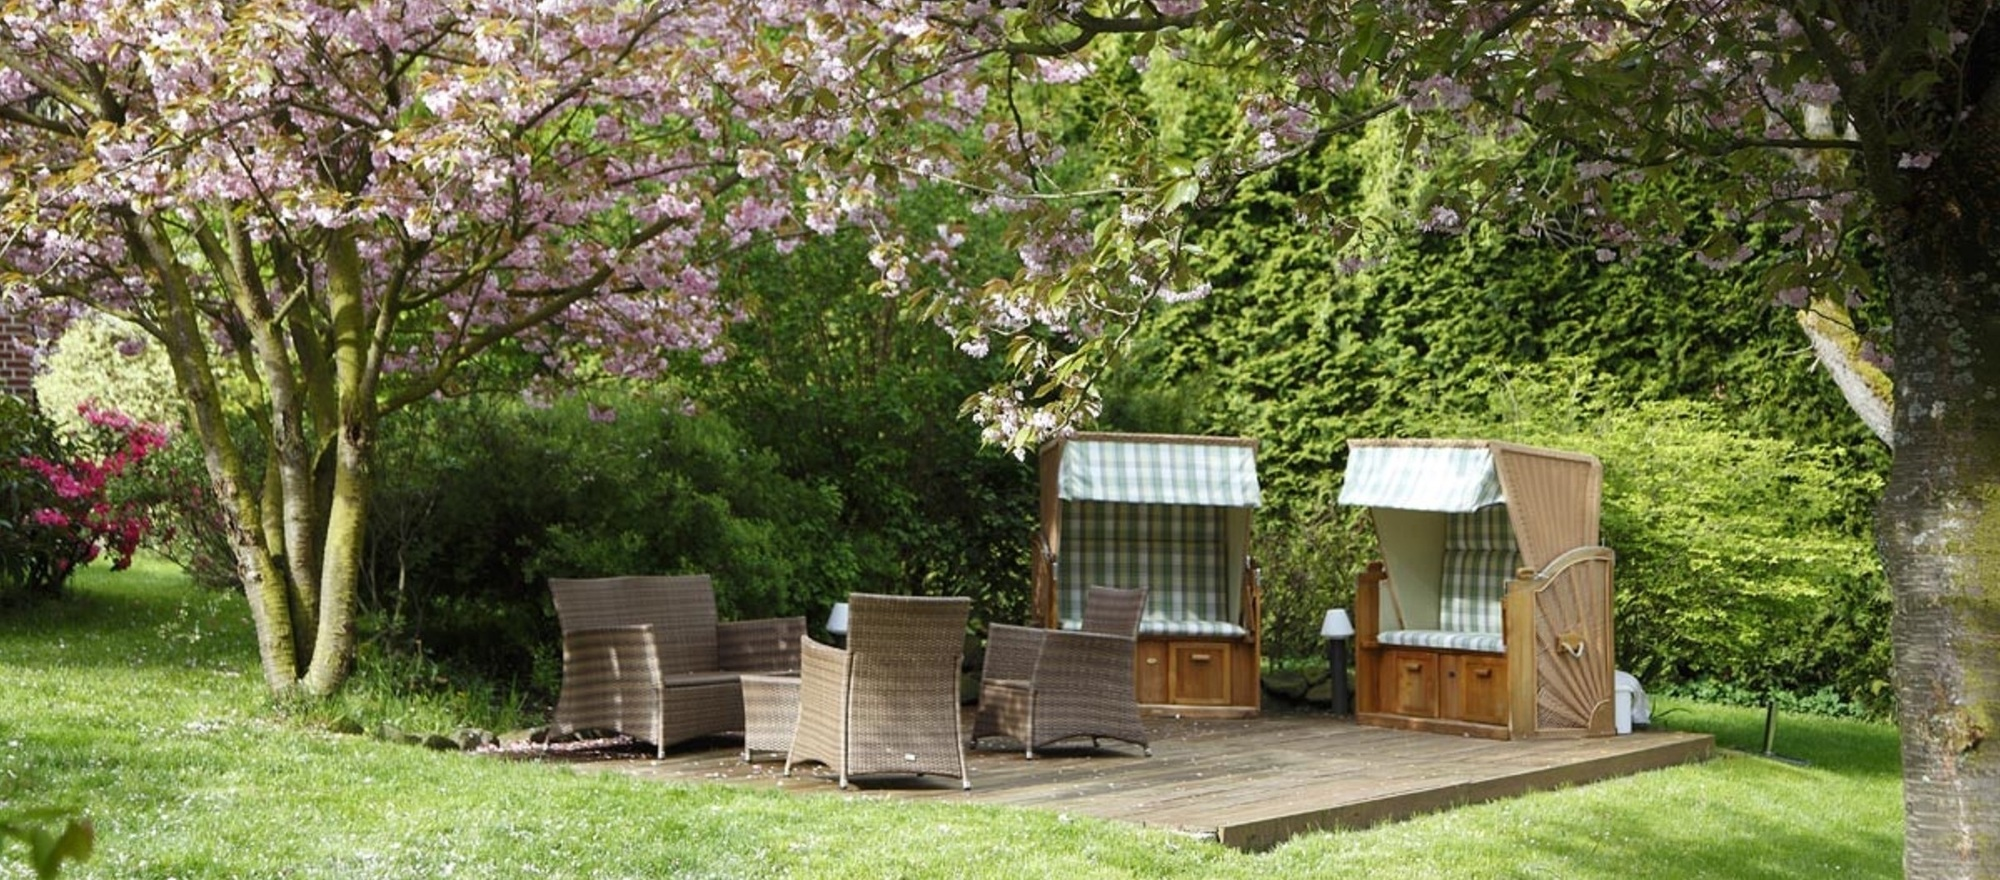 Restfulness area in the garden at the 4-star Ringhotel Posthotel Usseln in Willingen